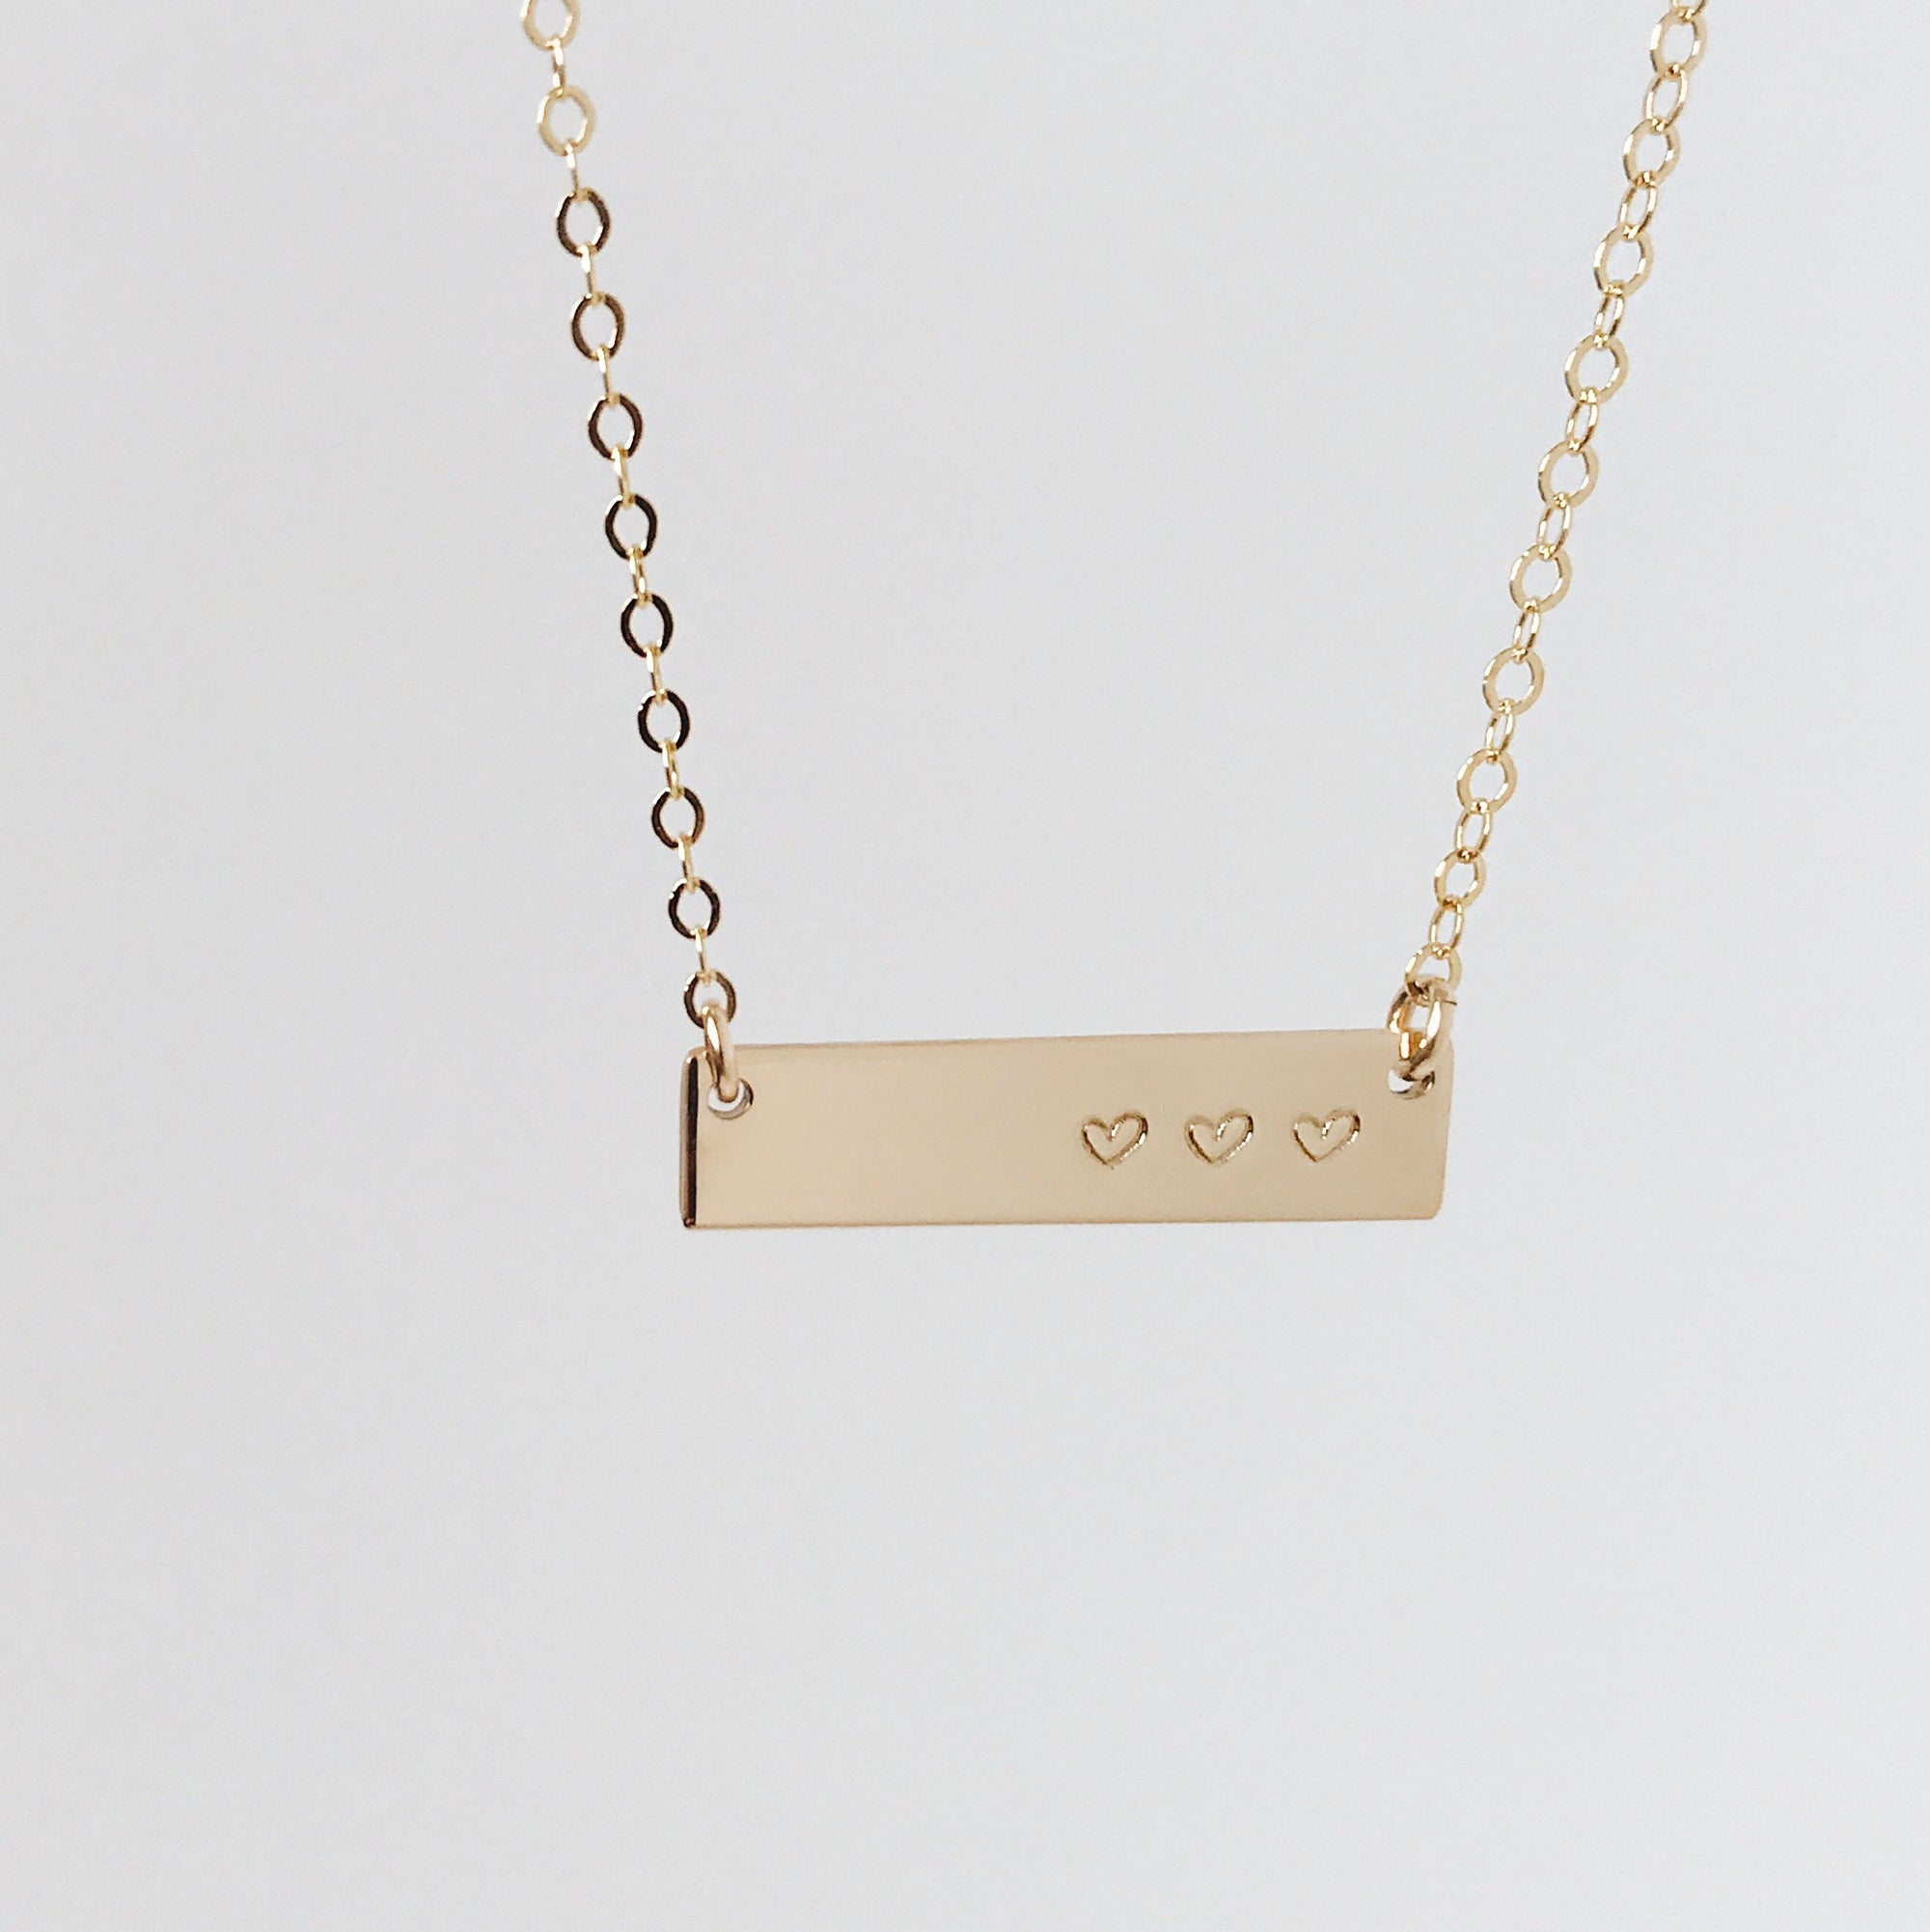 lumo gold mini necklace wb hexagonal white model pave diamond bar products